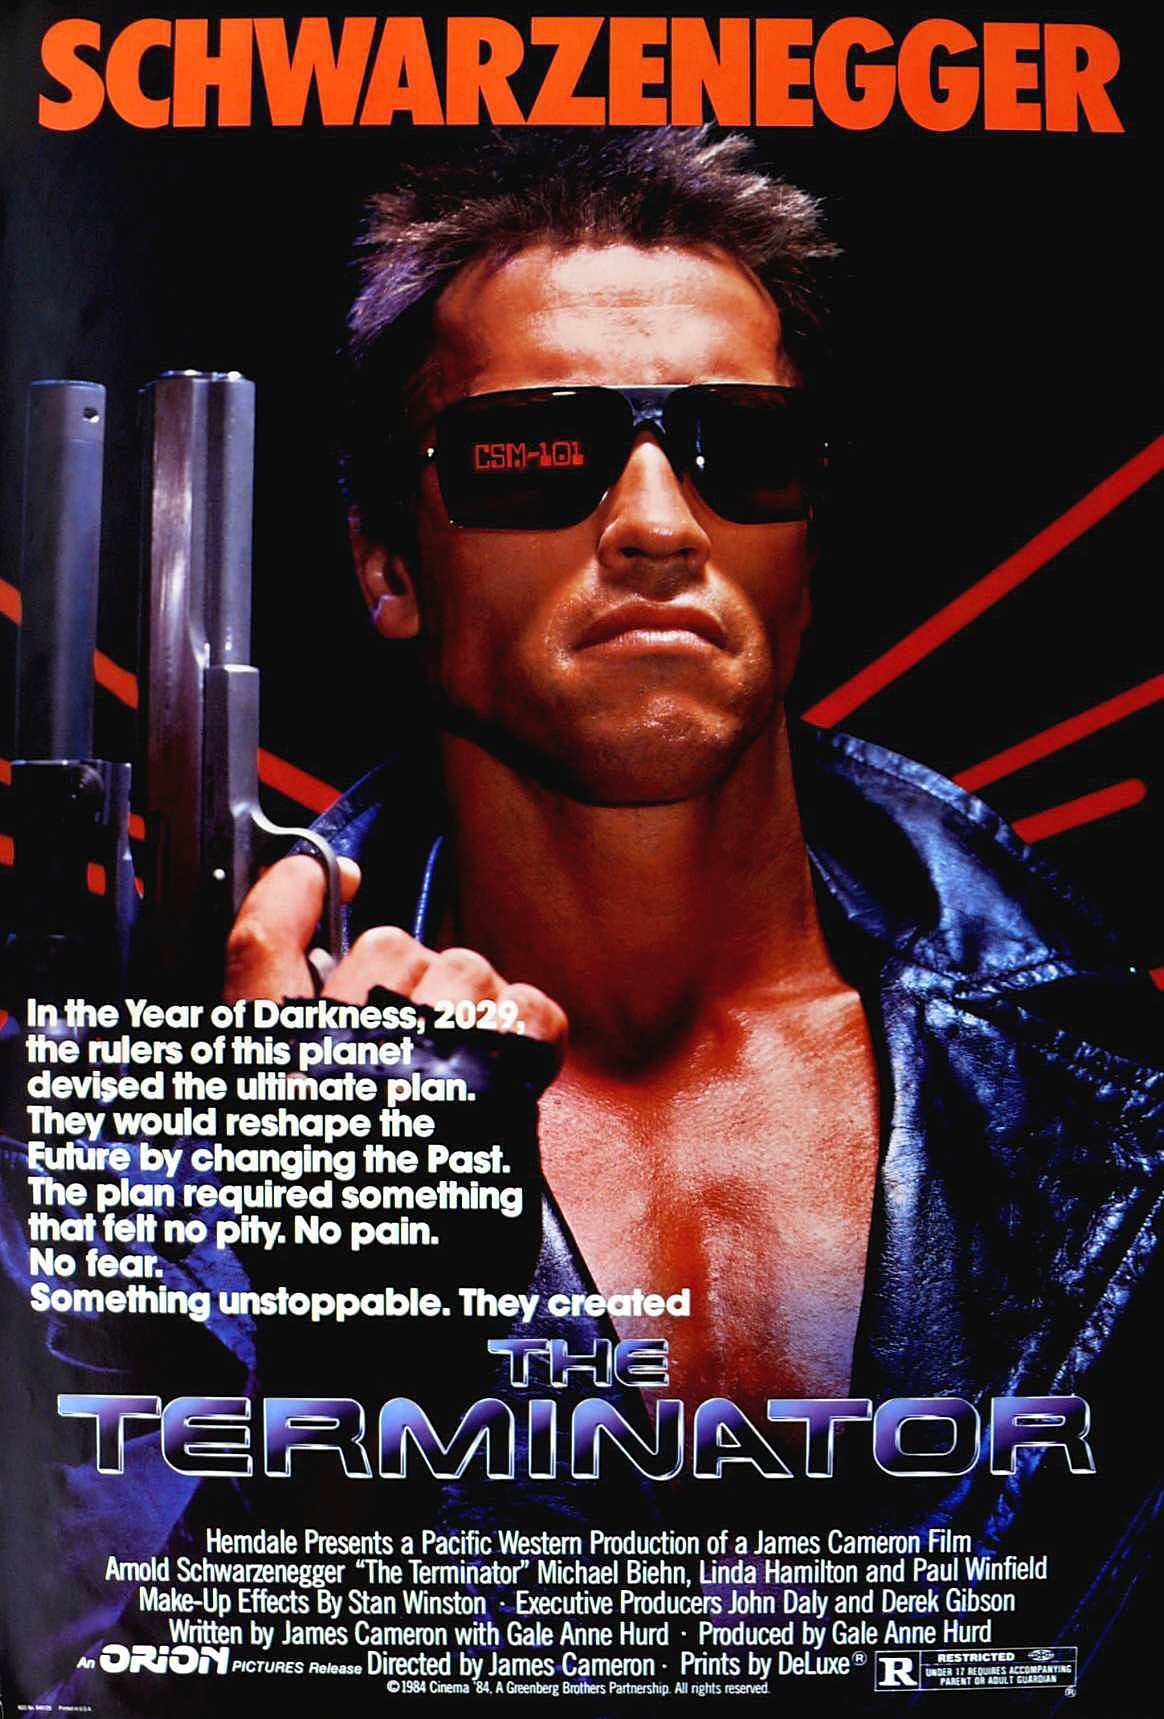 http://www.imfdb.org/images/a/af/Terminator_Poster.jpg